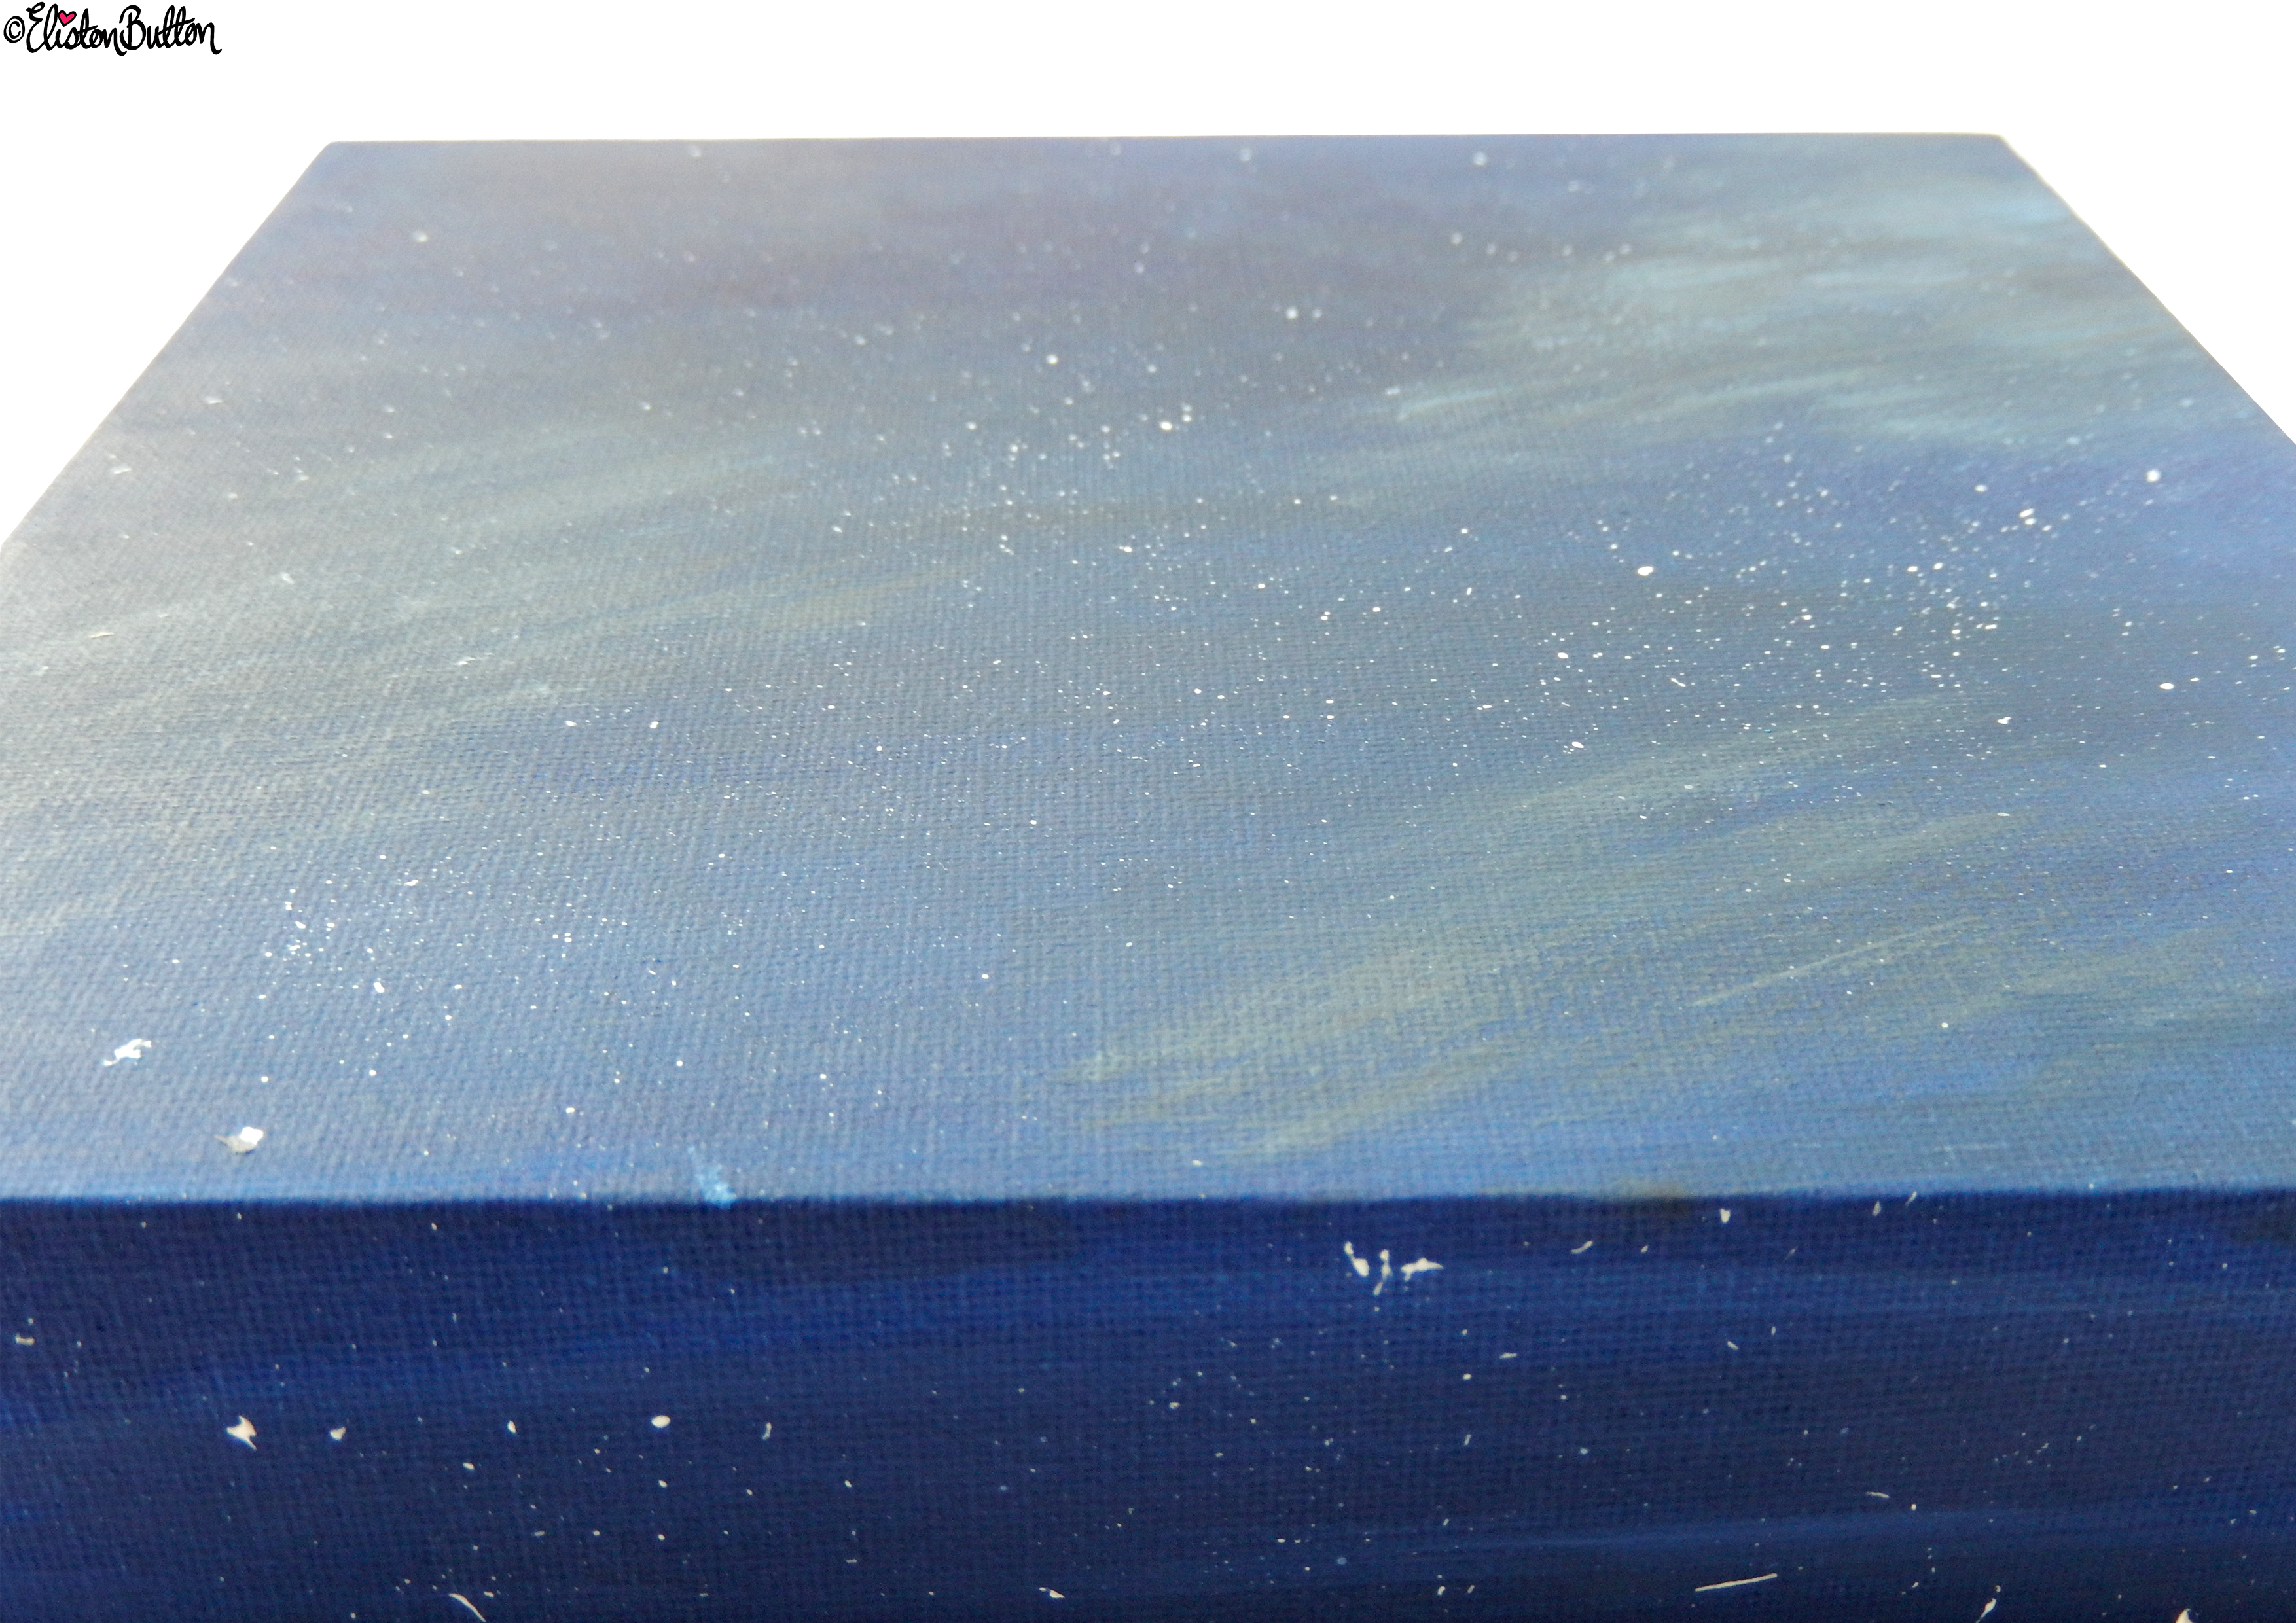 Starry Night Sky Painted Canvas - Close Up - Create 28 - No. 16, 17 & 18 - Sea and Sky Painted Canvases at www.elistonbutton.com - Eliston Button - That Crafty Kid – Art, Design, Craft & Adventure.